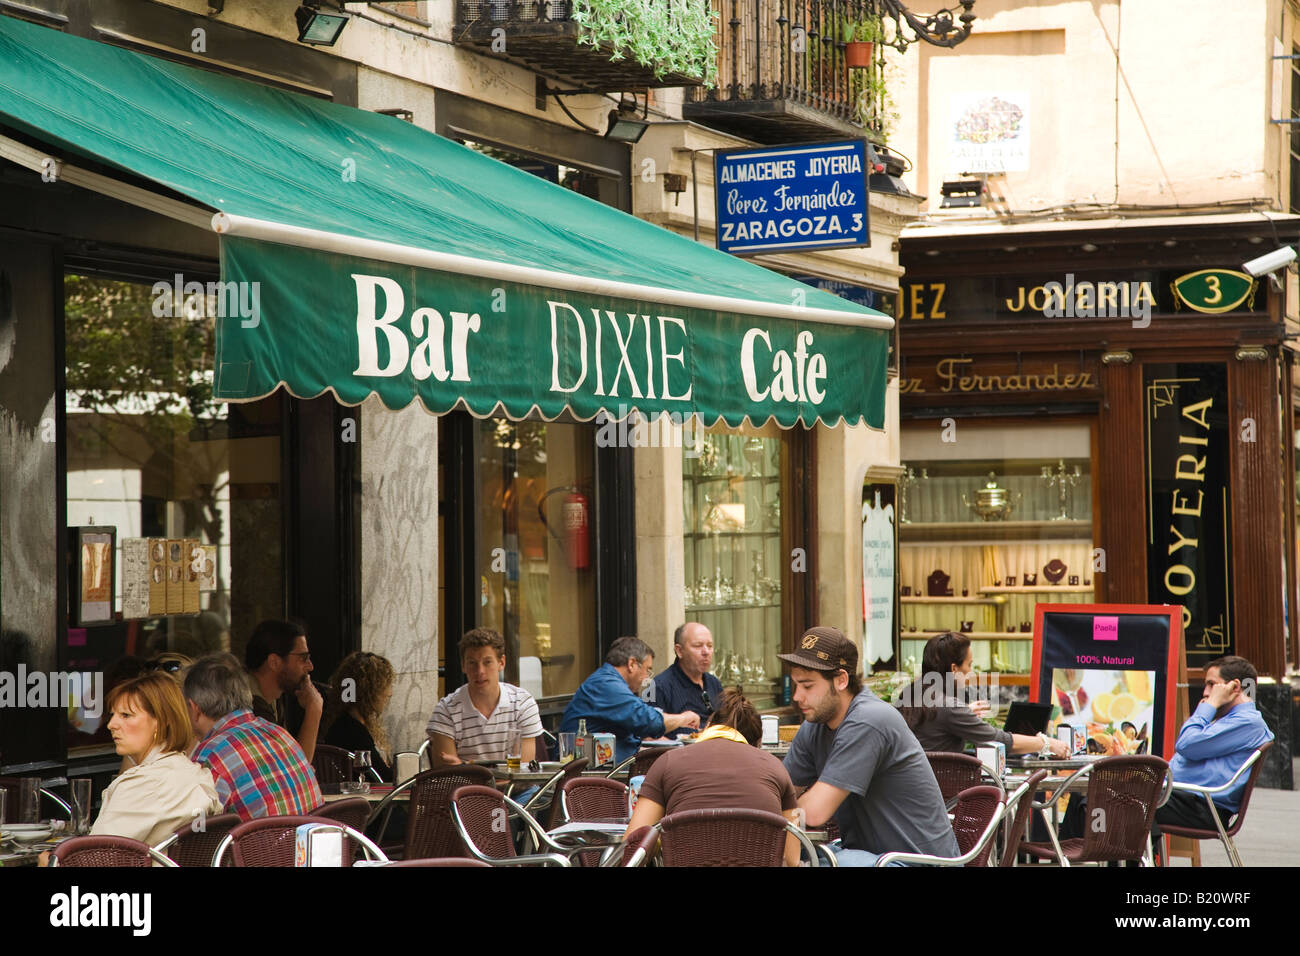 SPAIN Madrid People sitting at outdoor tables at Dixie Bar and Cafe green awning at restaurant English name in Spanish - Stock Image